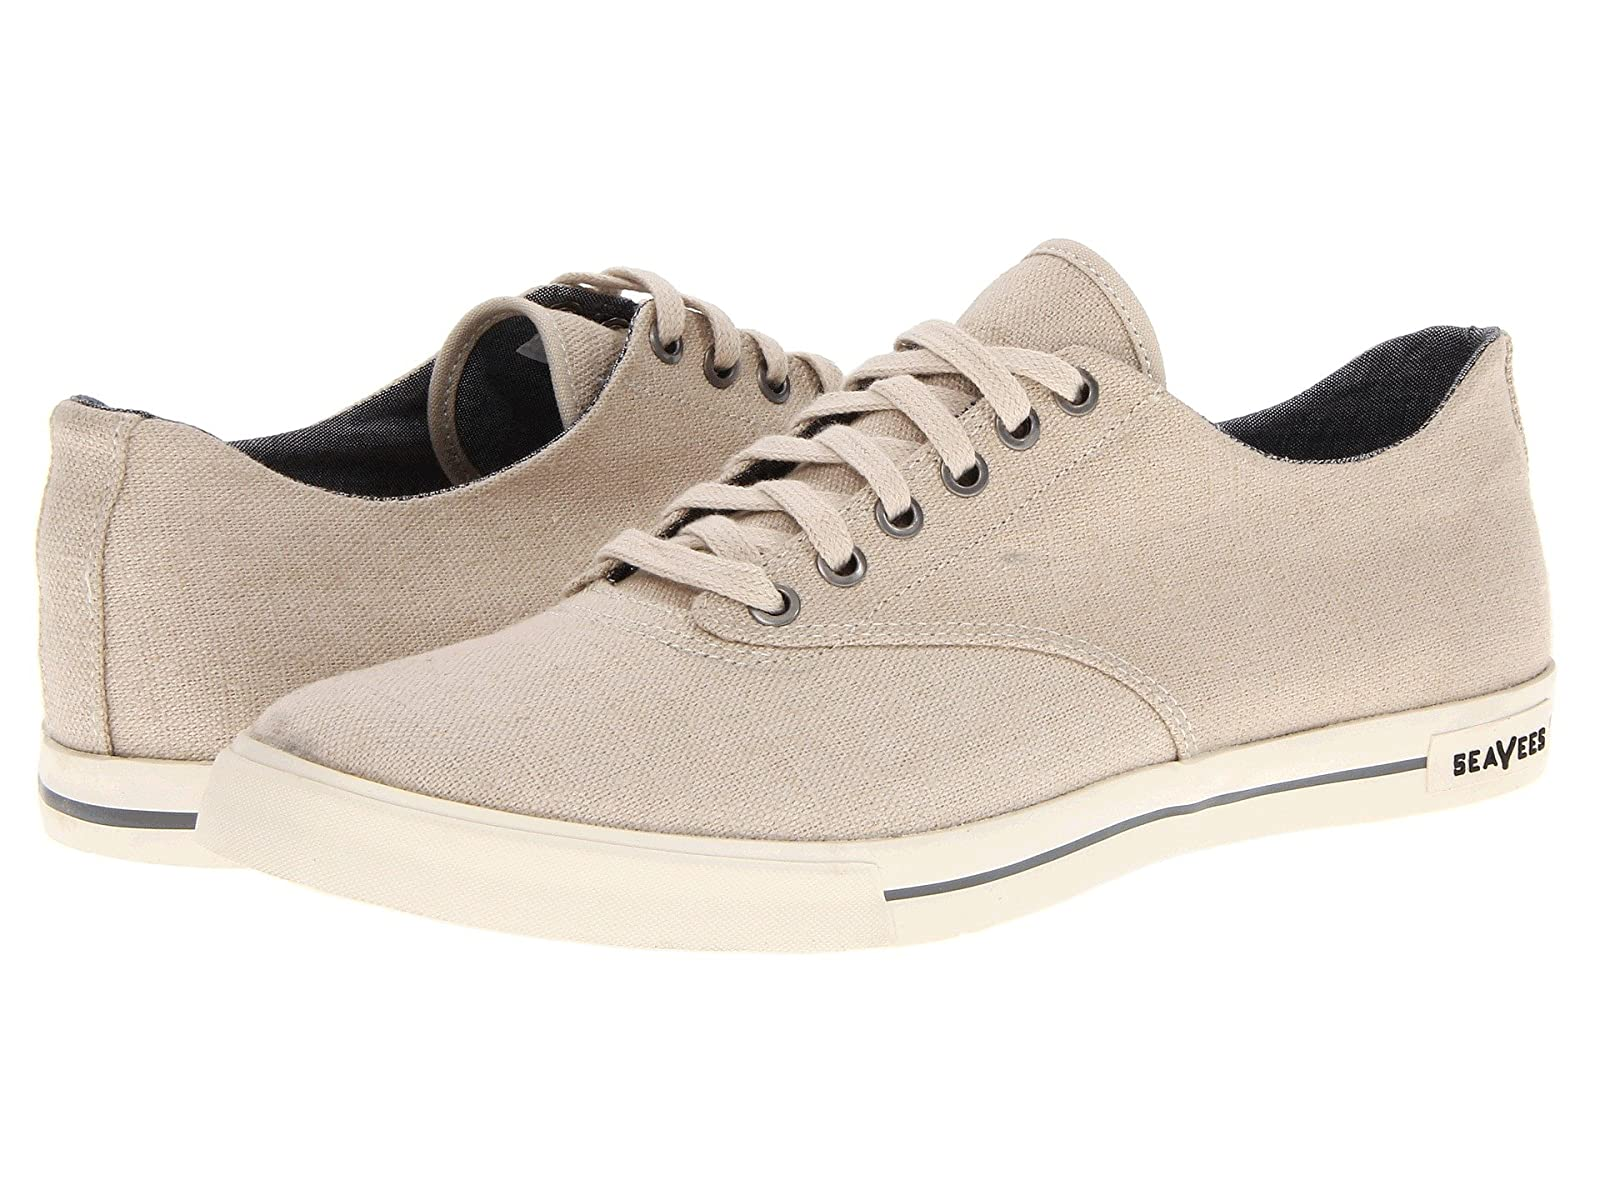 SeaVees 08/63 Hermosa Plimsoll CoreAtmospheric grades have affordable shoes